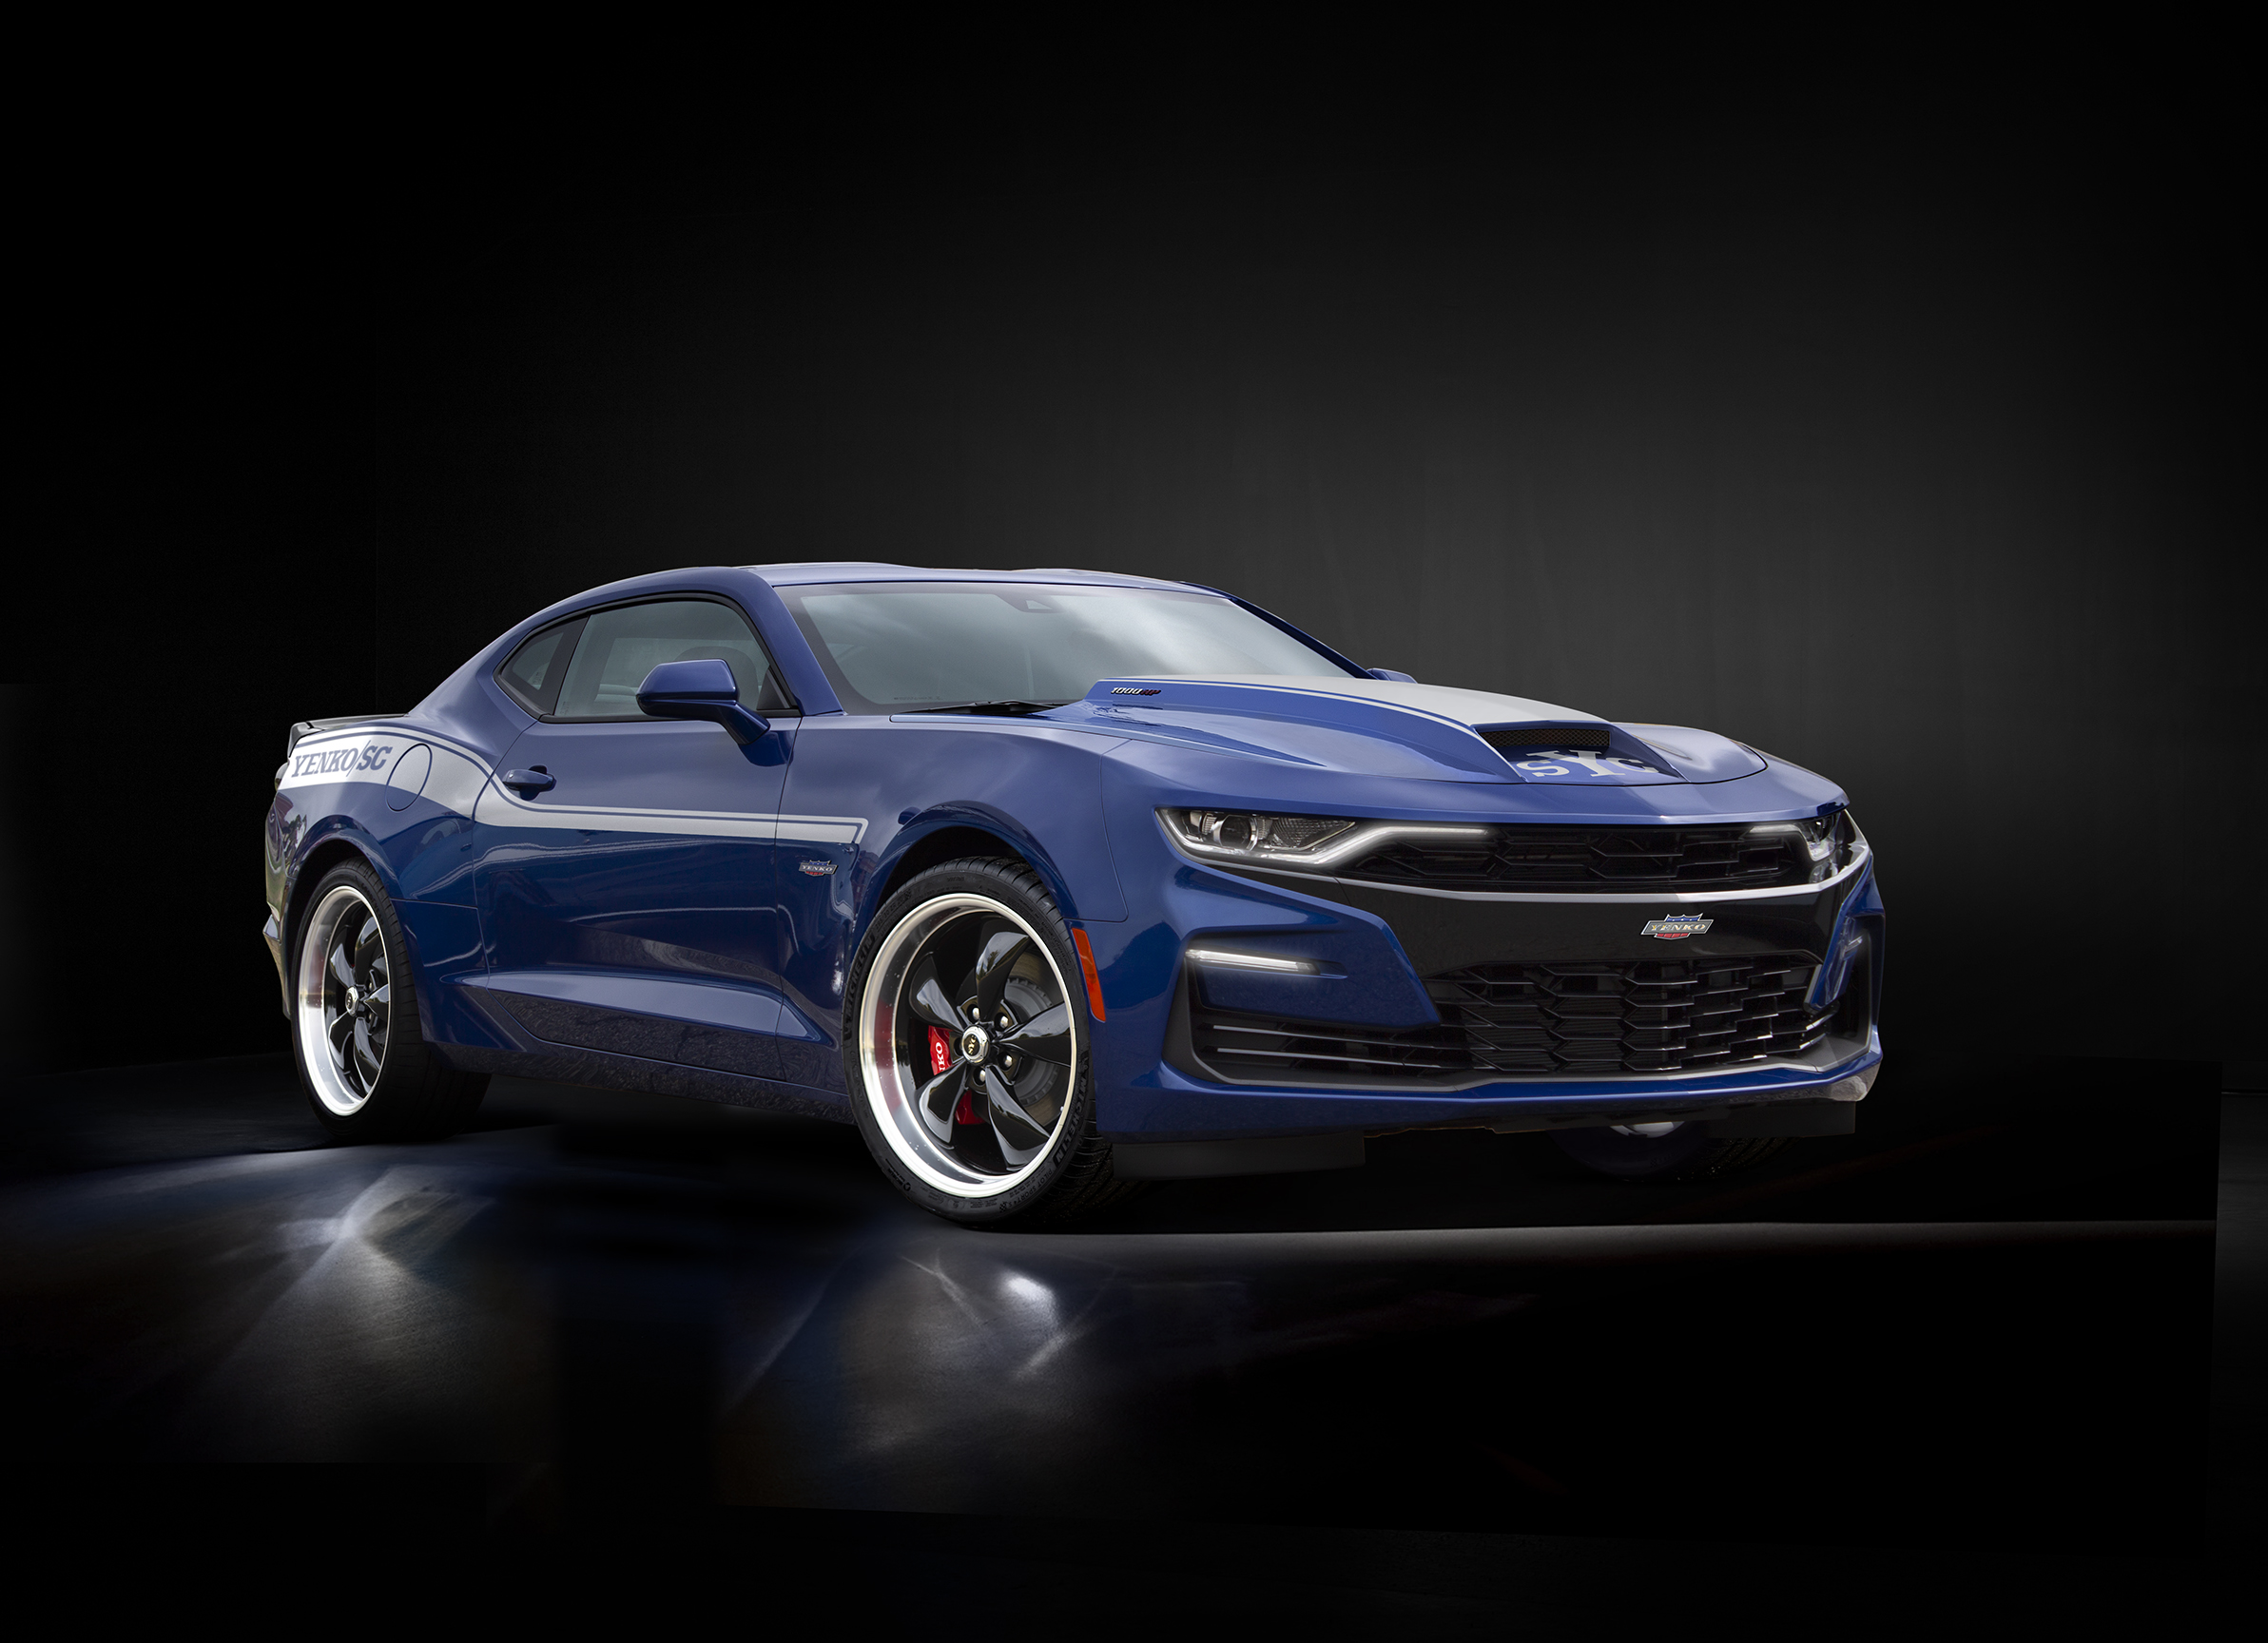 The 1,000-Horsepower 2019 Yenko/SC Camaro Is Now on Sale at a Dealer